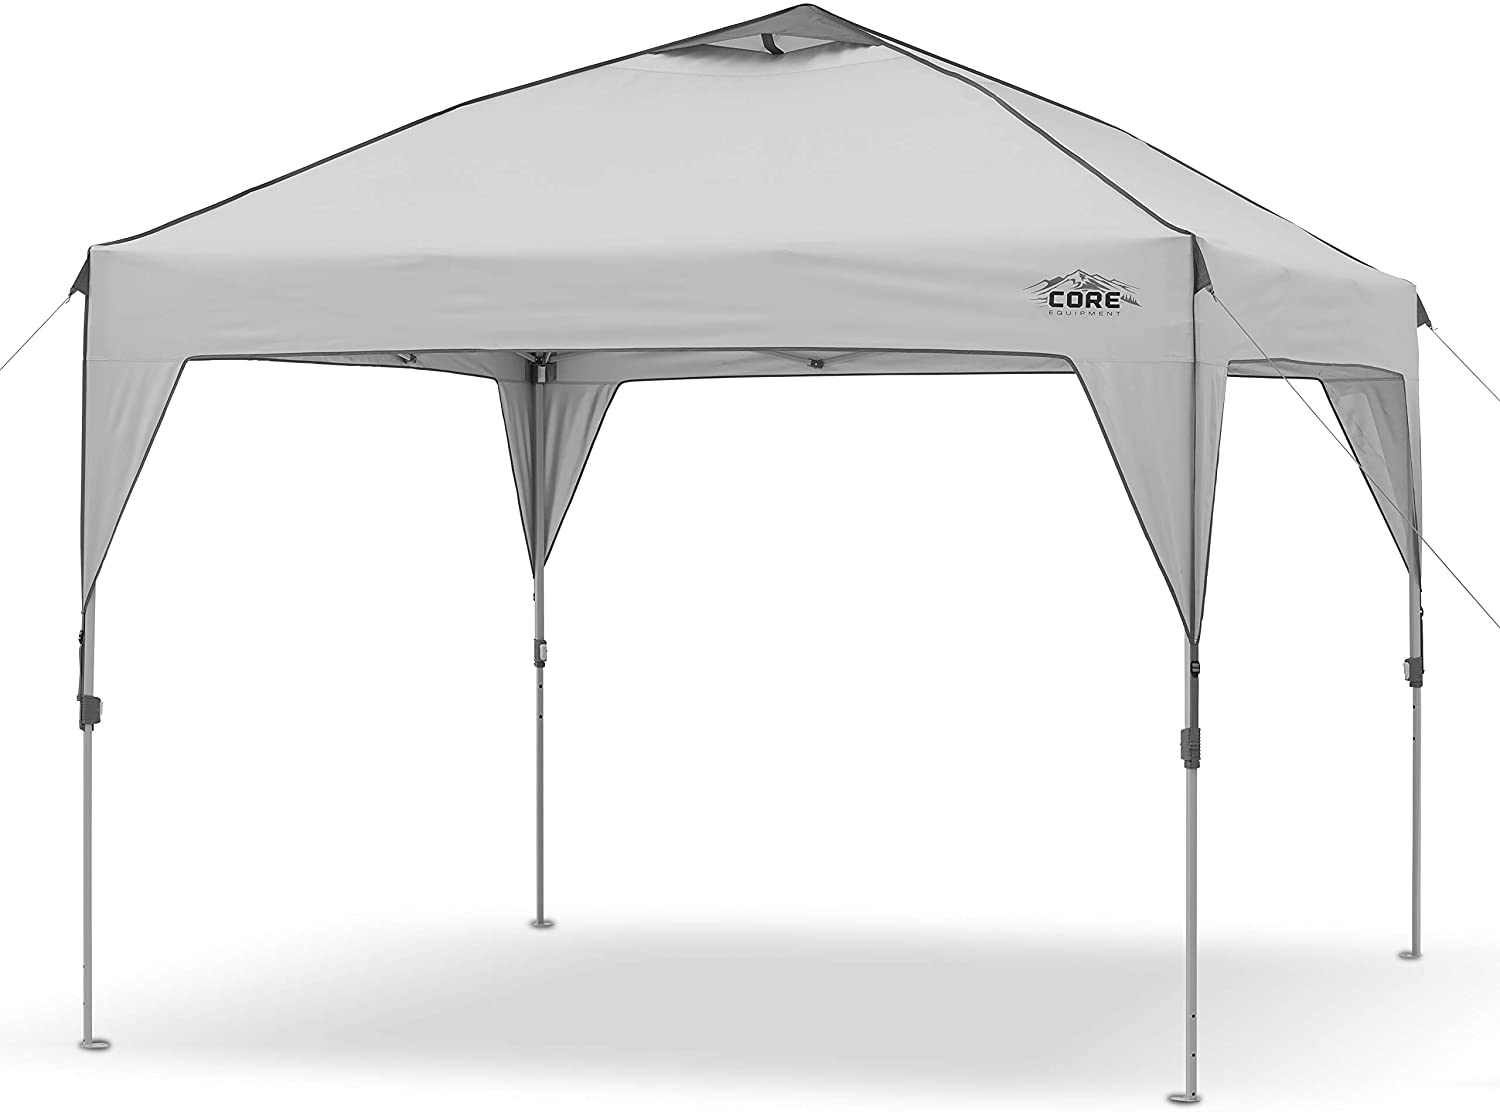 Core Alloy Steel Pop Up Shade